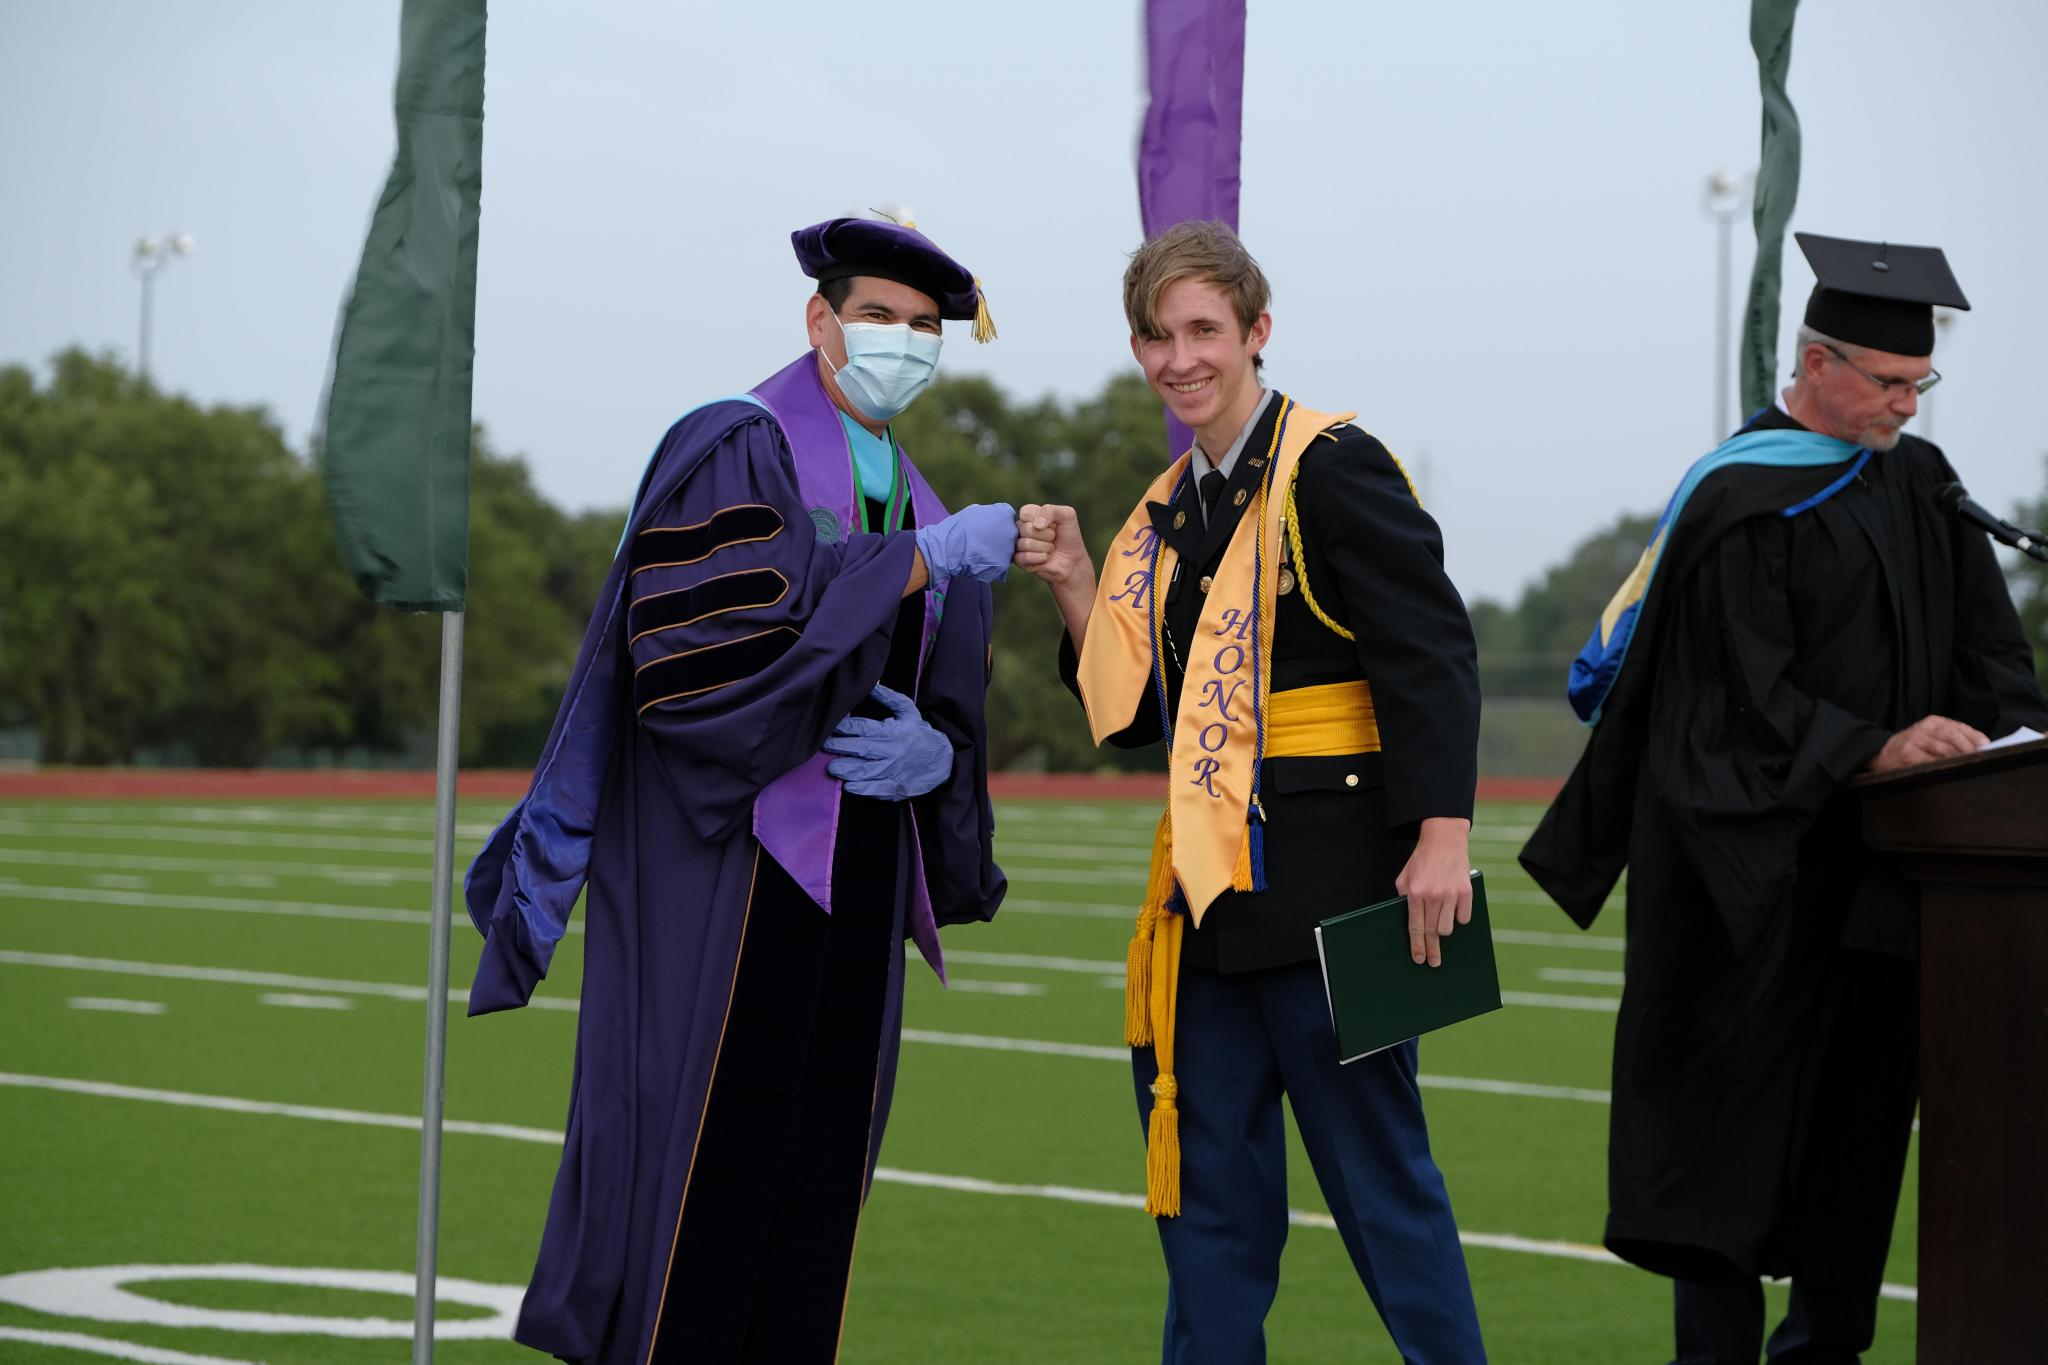 With a fist bump from President Brian Guenther, Caleb Strube of San Marcos celebrates receiving his cum laude diploma. Strube will enter Texas A&M at College Station as an Aggie Corps cadet this fall to major in political science.